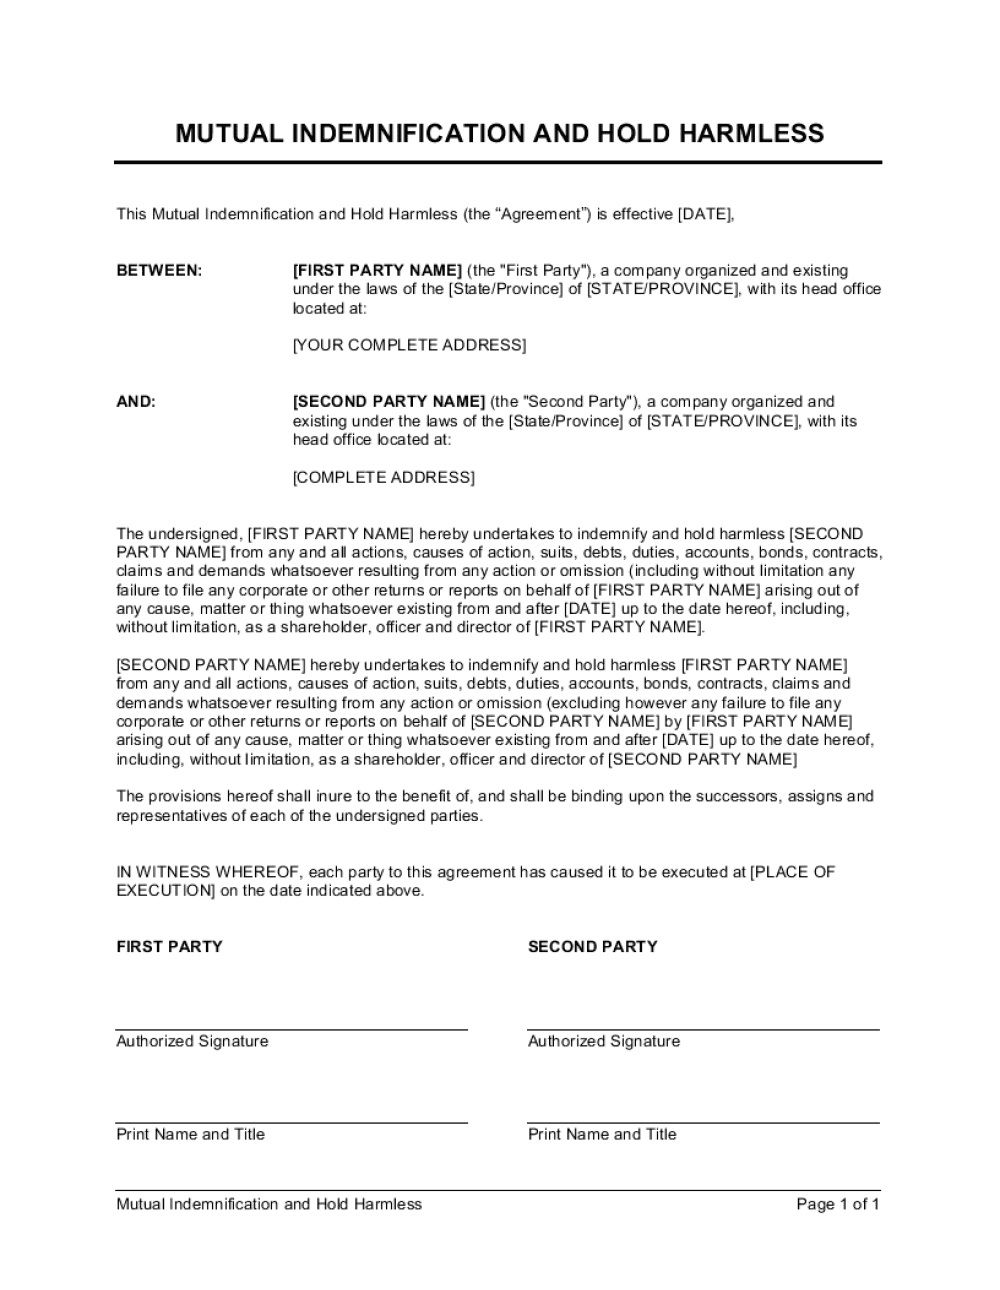 009 Impressive Hold Harmles Agreement Template Sample  Canada Word Free DownloadFull